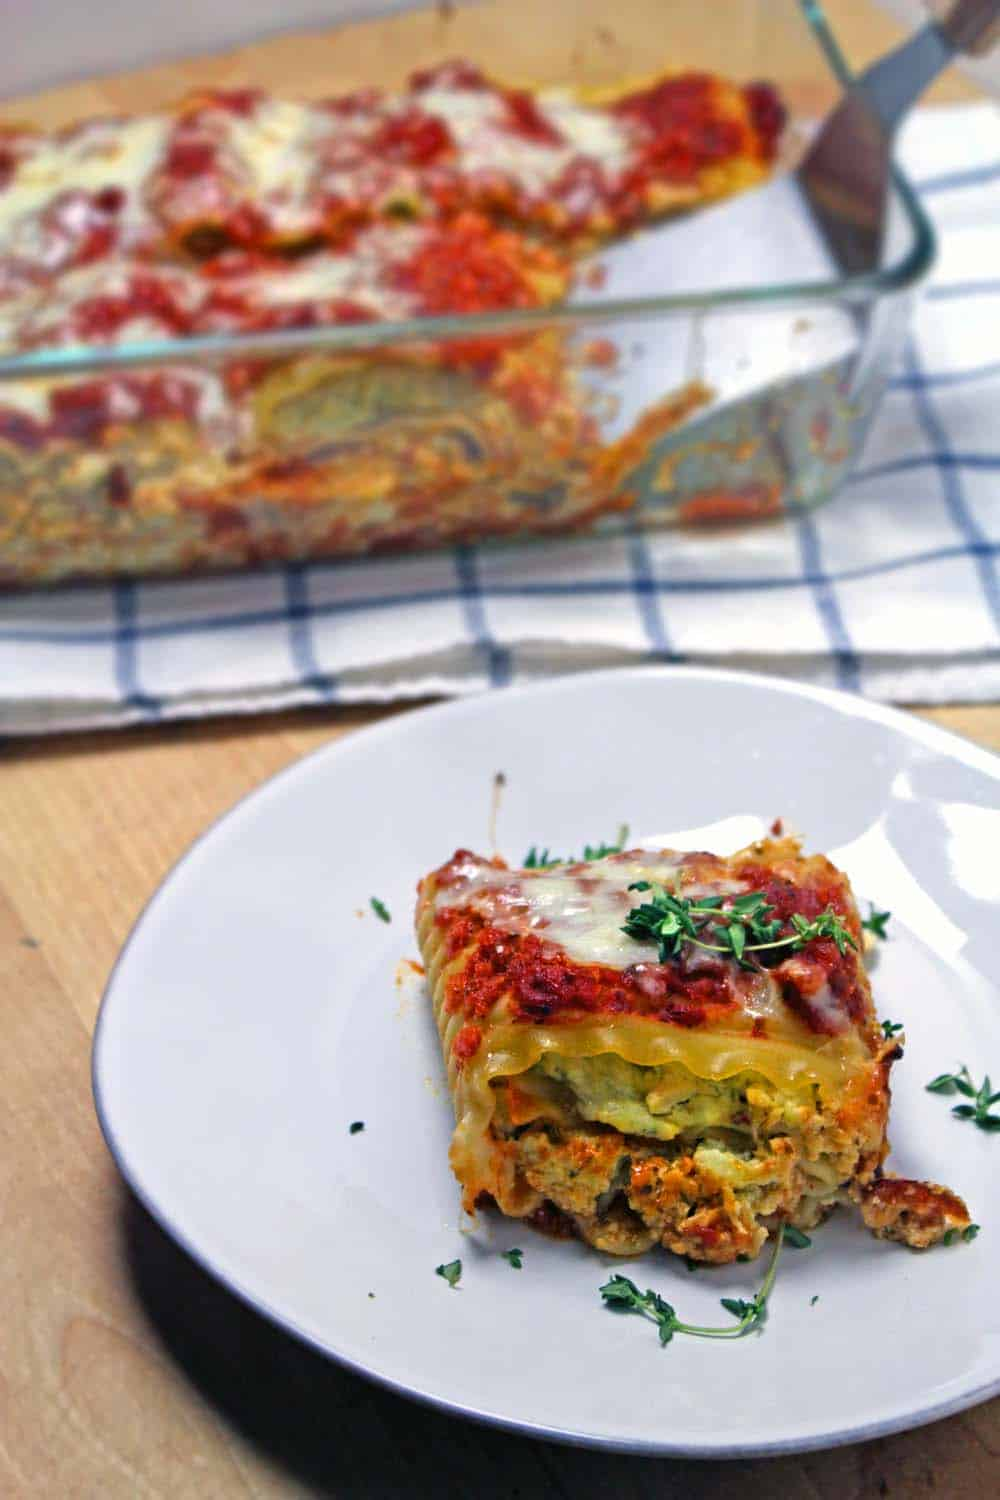 Pesto Chicken Lasagna Roll-ups   A delicious mixture of pesto, chicken, and ricotta cheese is spread on individual lasagna noodles, rolled, and topped with sauce and cheese for a perfectly portioned and hearty meal!